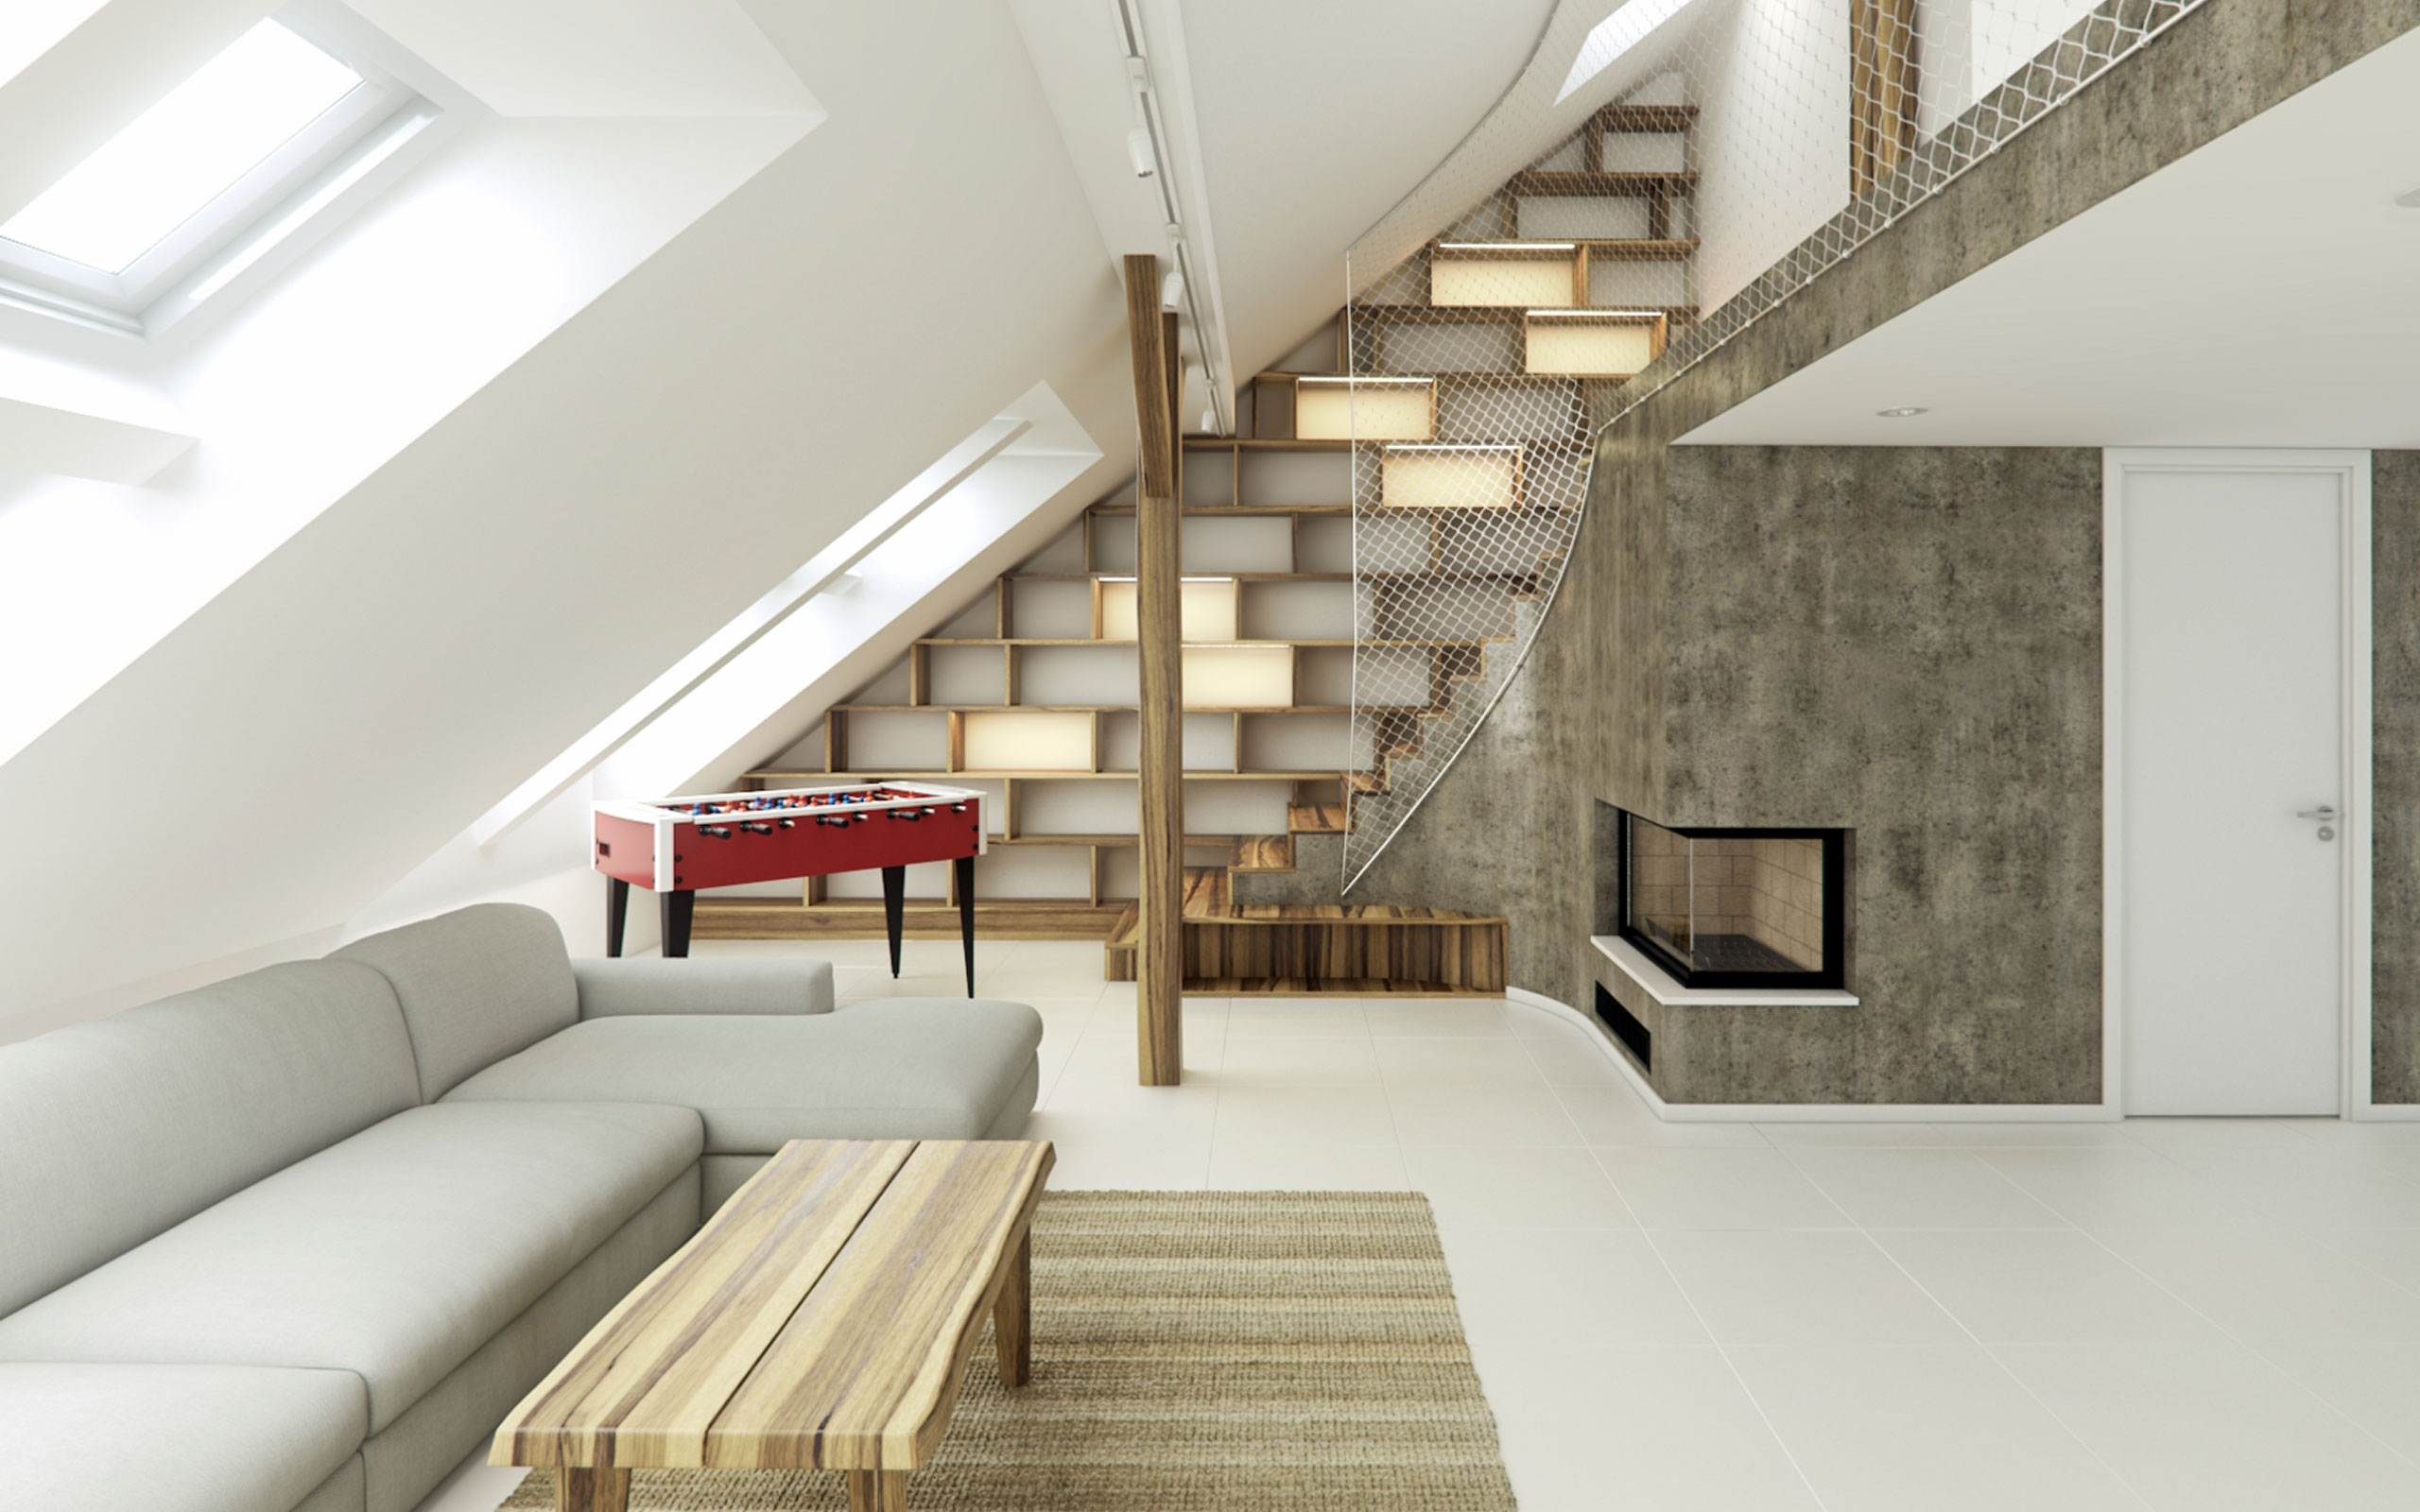 Rounded Loft Rendering Services